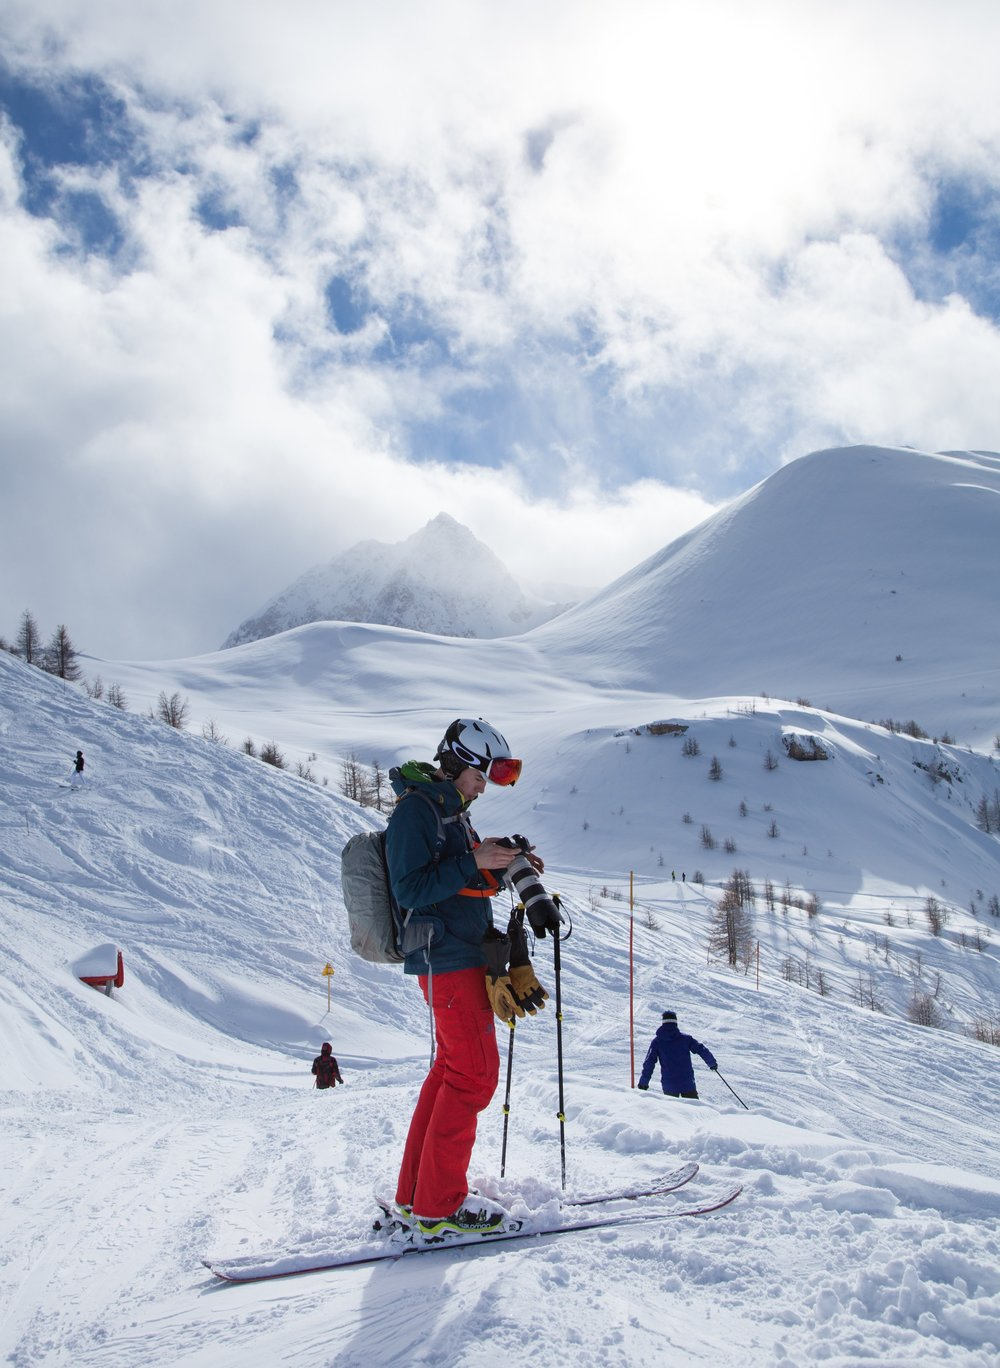 BTS from a shoot for Serre Chevalier Tourism board.  Image by good friend Toby Roney